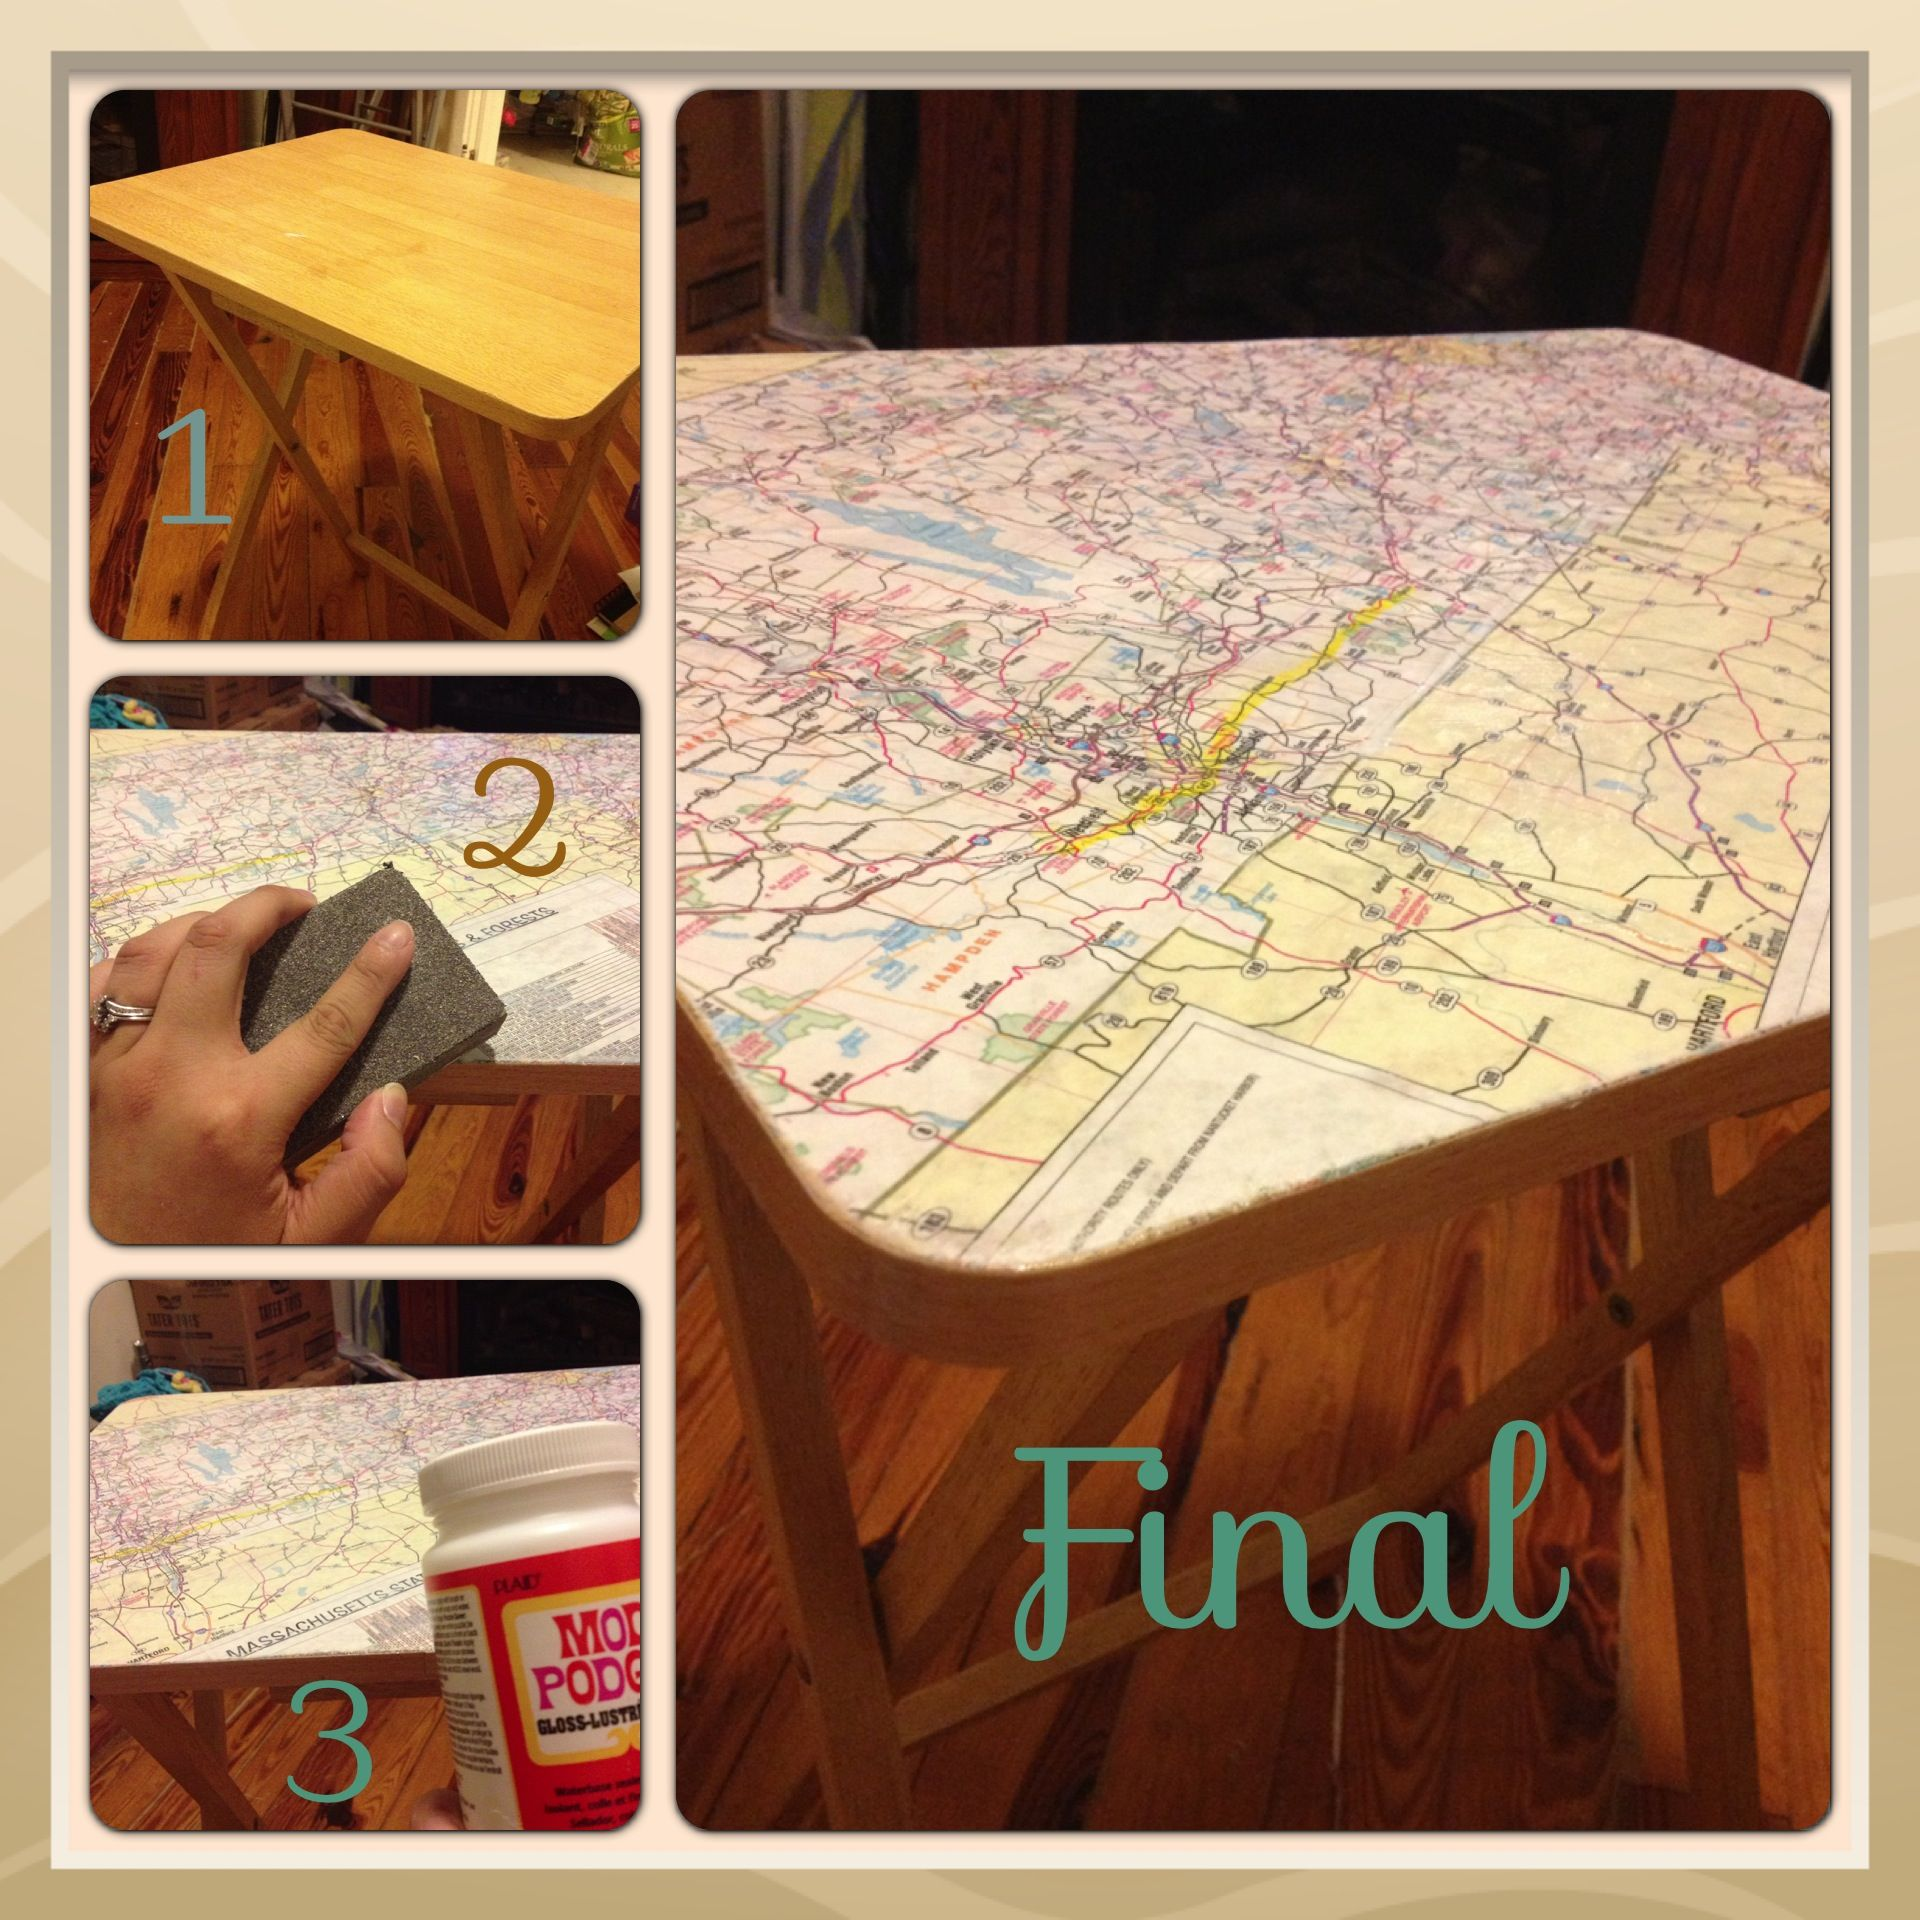 Sand Table To Make Smooth. Cut Map The Size Of The Table. Cover With Table  With Modge Podge. Place Map On Top And Smooth Down. Let Dry And Sand The  Edges Of ...